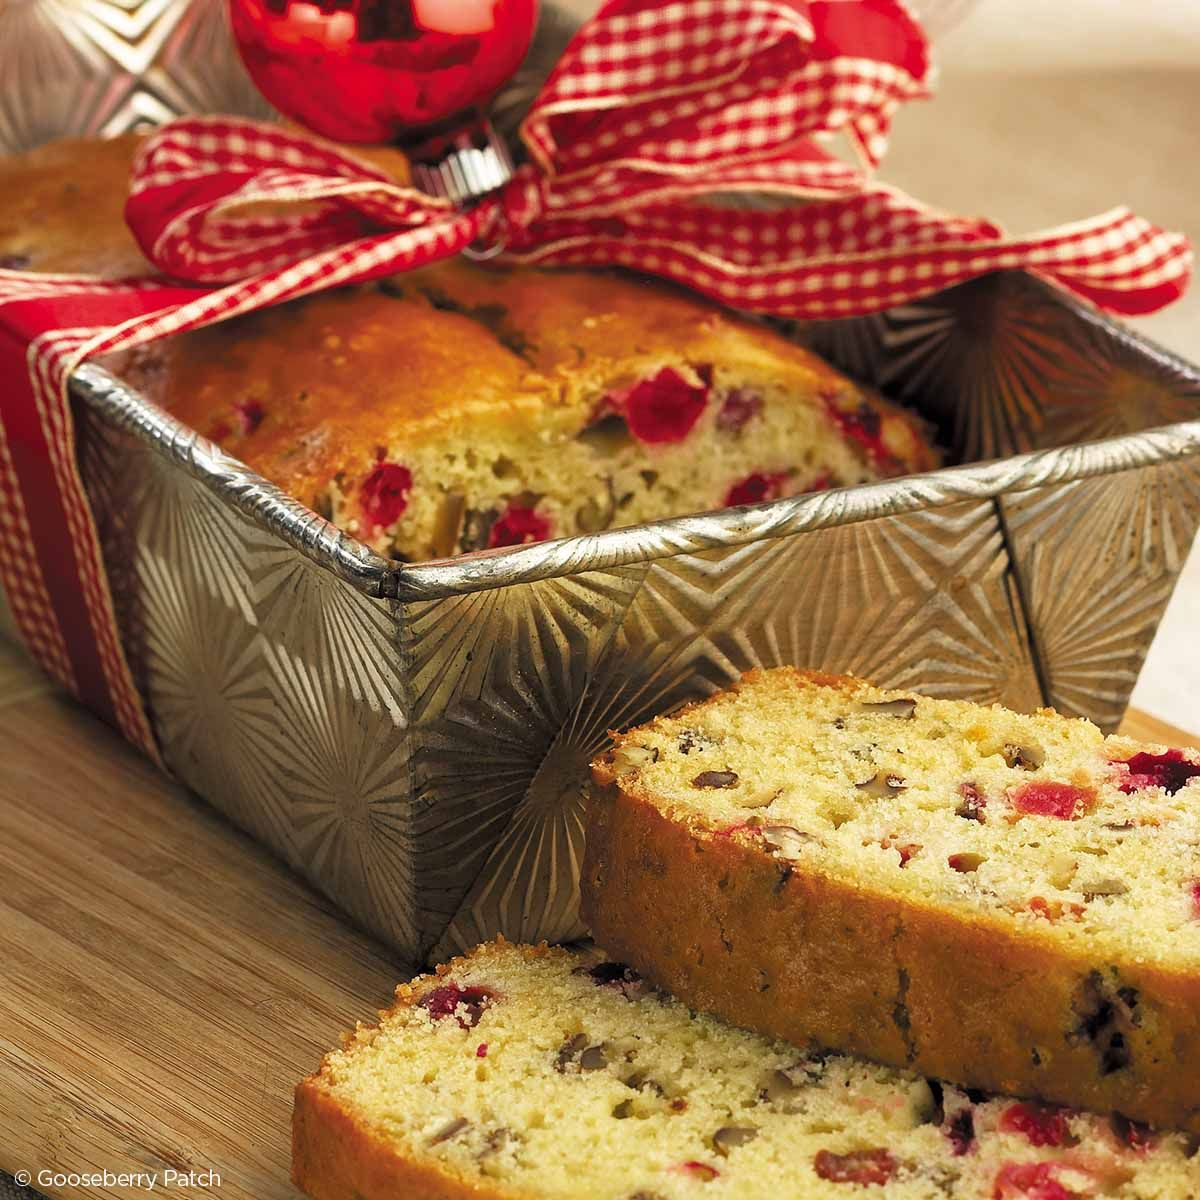 Gooseberry Patch Recipes Mrs Claus 39 Christmas Bread From